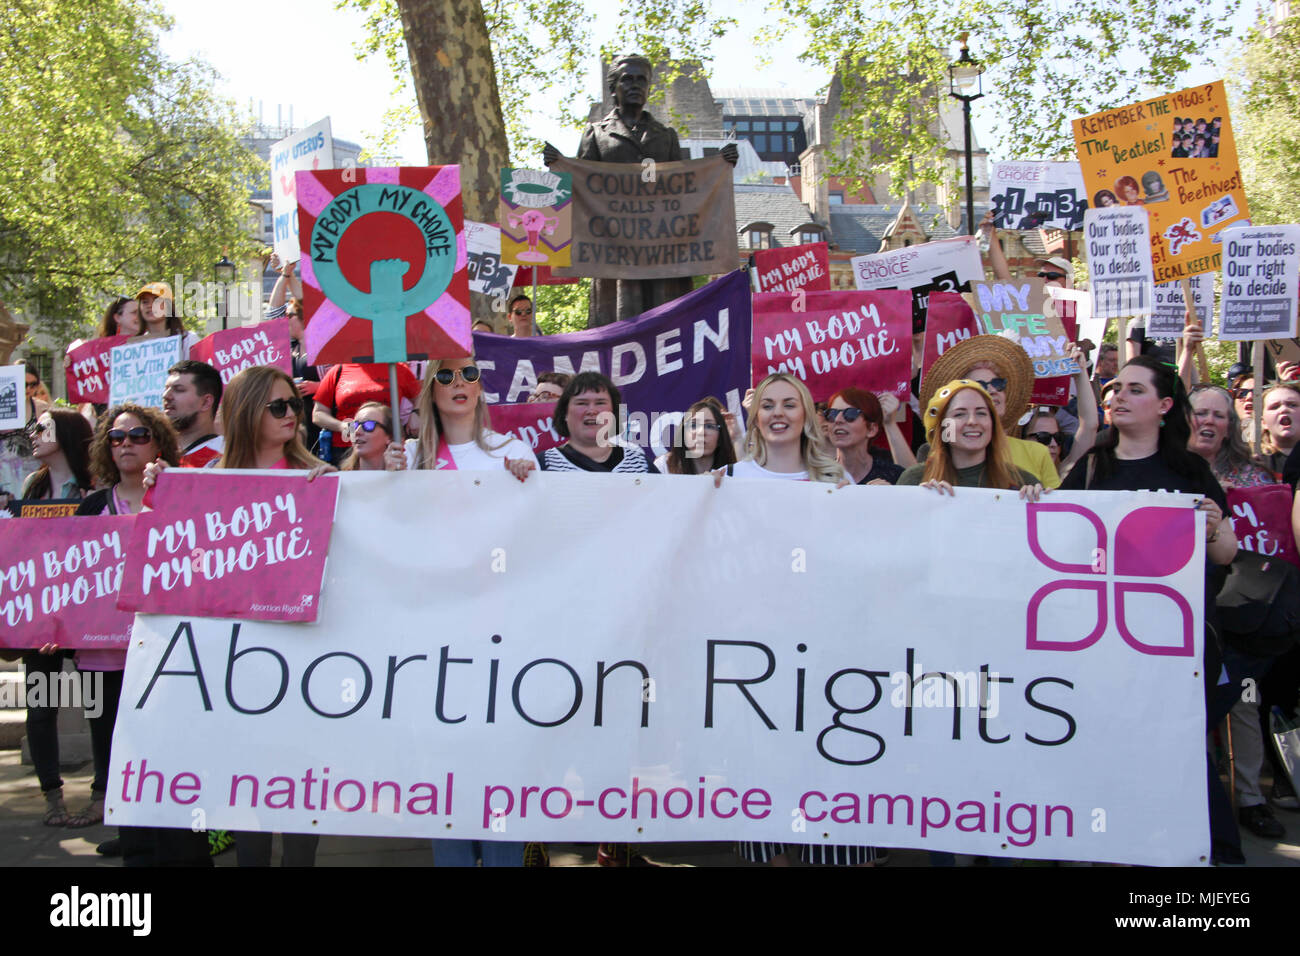 London, UK. 5th May, 2018. Pro-choice demonstrators pose next to statue of Suffragist Millicent Fawcett Credit: Alex Cavendish/Alamy Live News - Stock Image